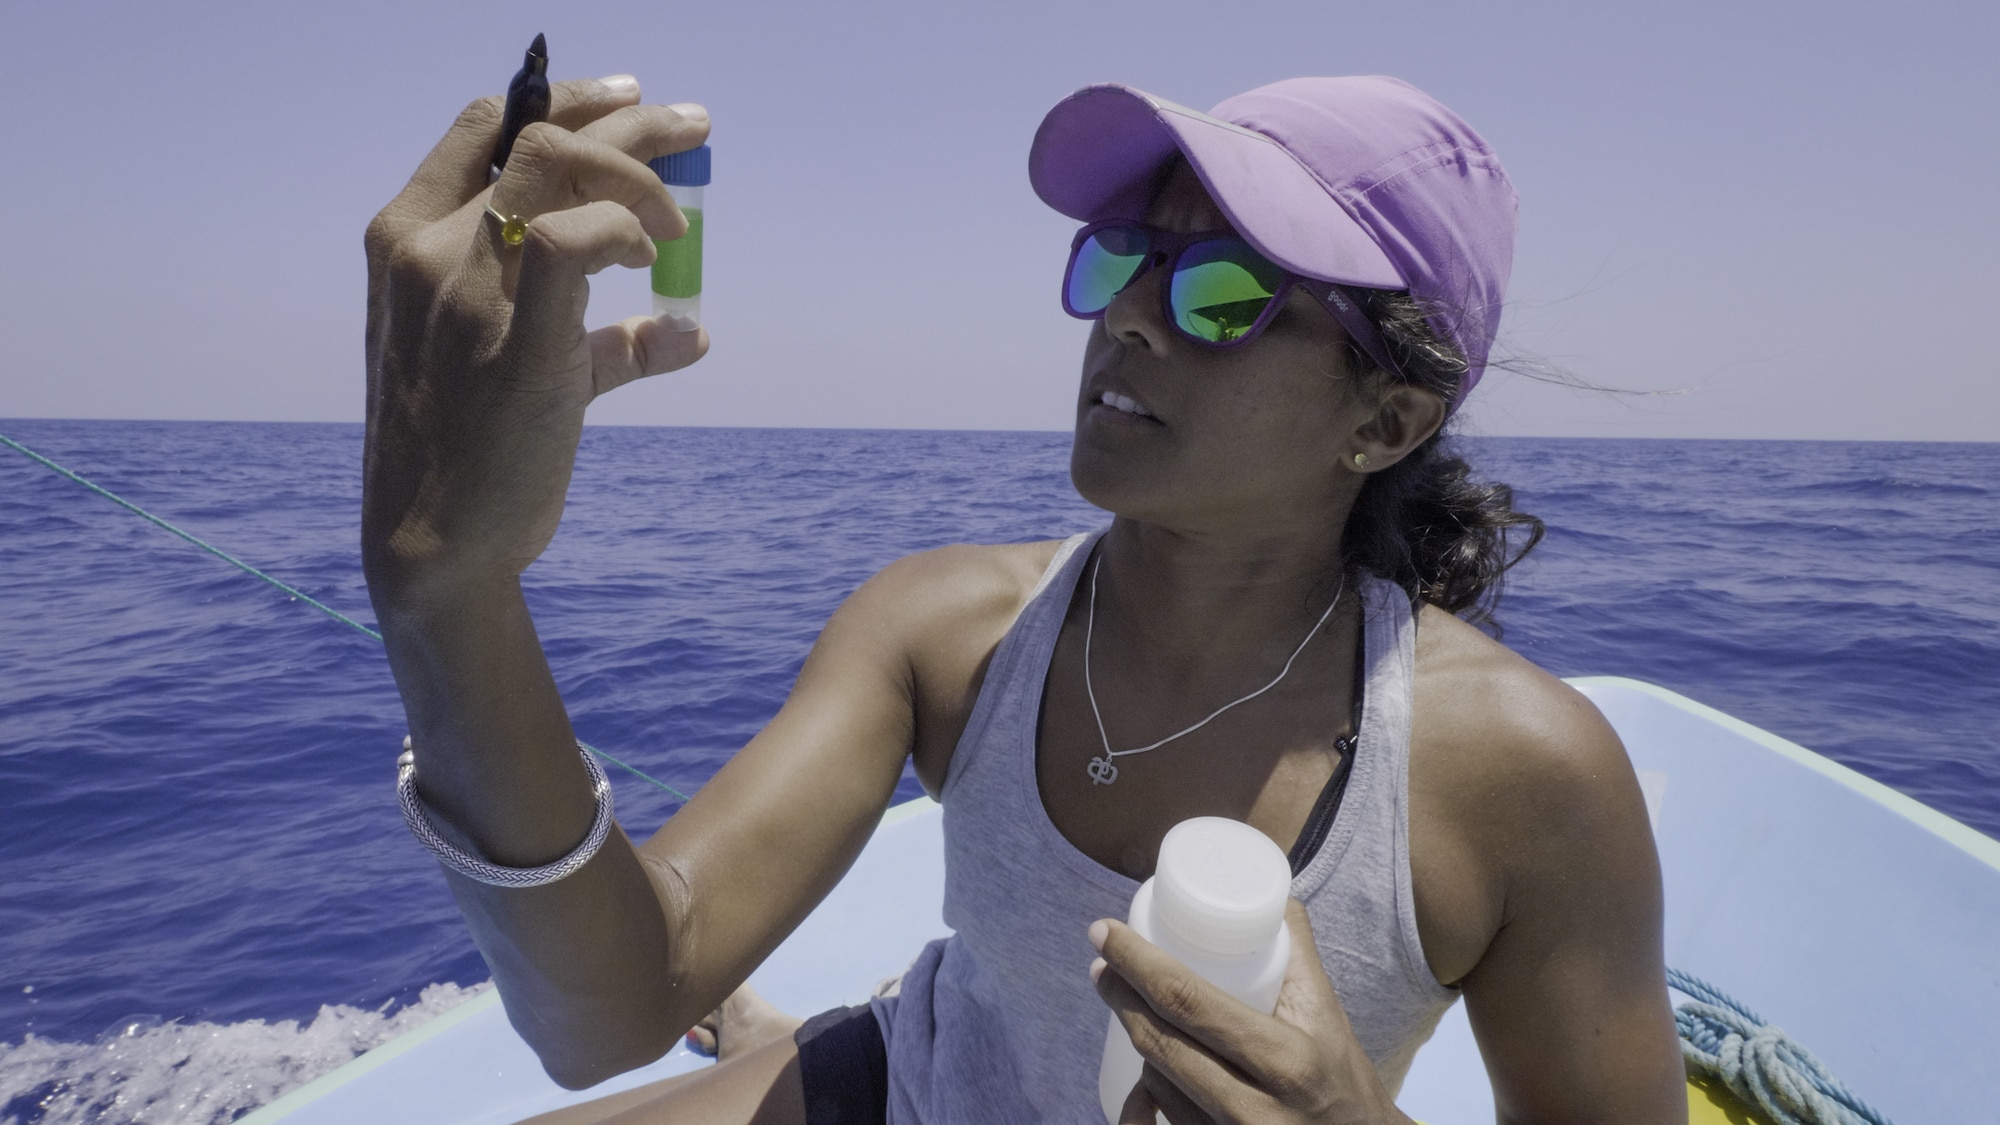 Marine biologist Asha DeVos studies a sample of sperm whale dung, which will give her clues into what the whales are eating. (National Geographic for Disney+/Andrew Mitchell)